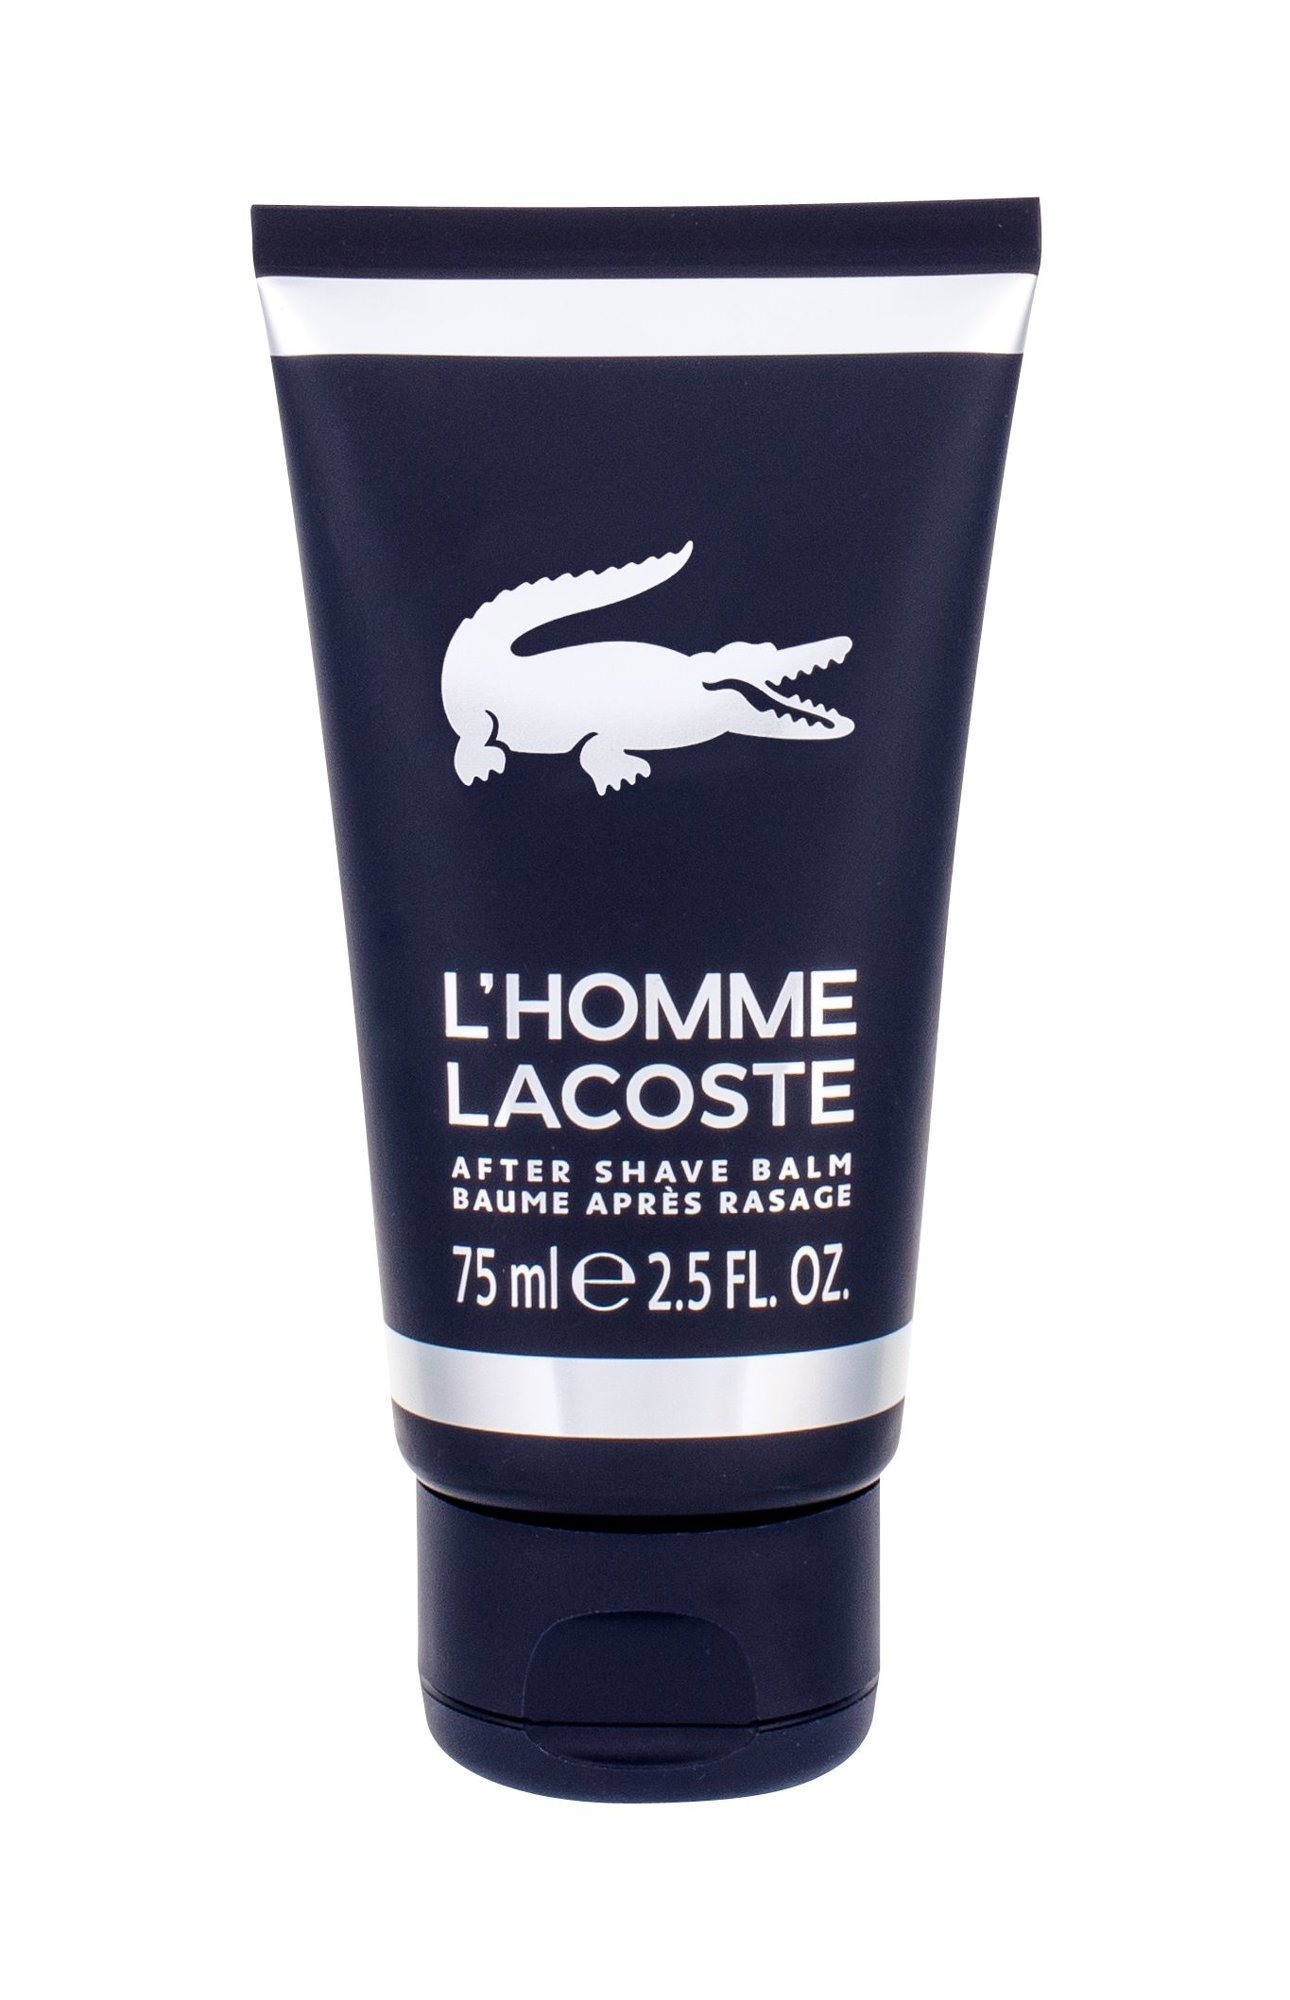 Lacoste L´Homme Lacoste After shave balm 75ml